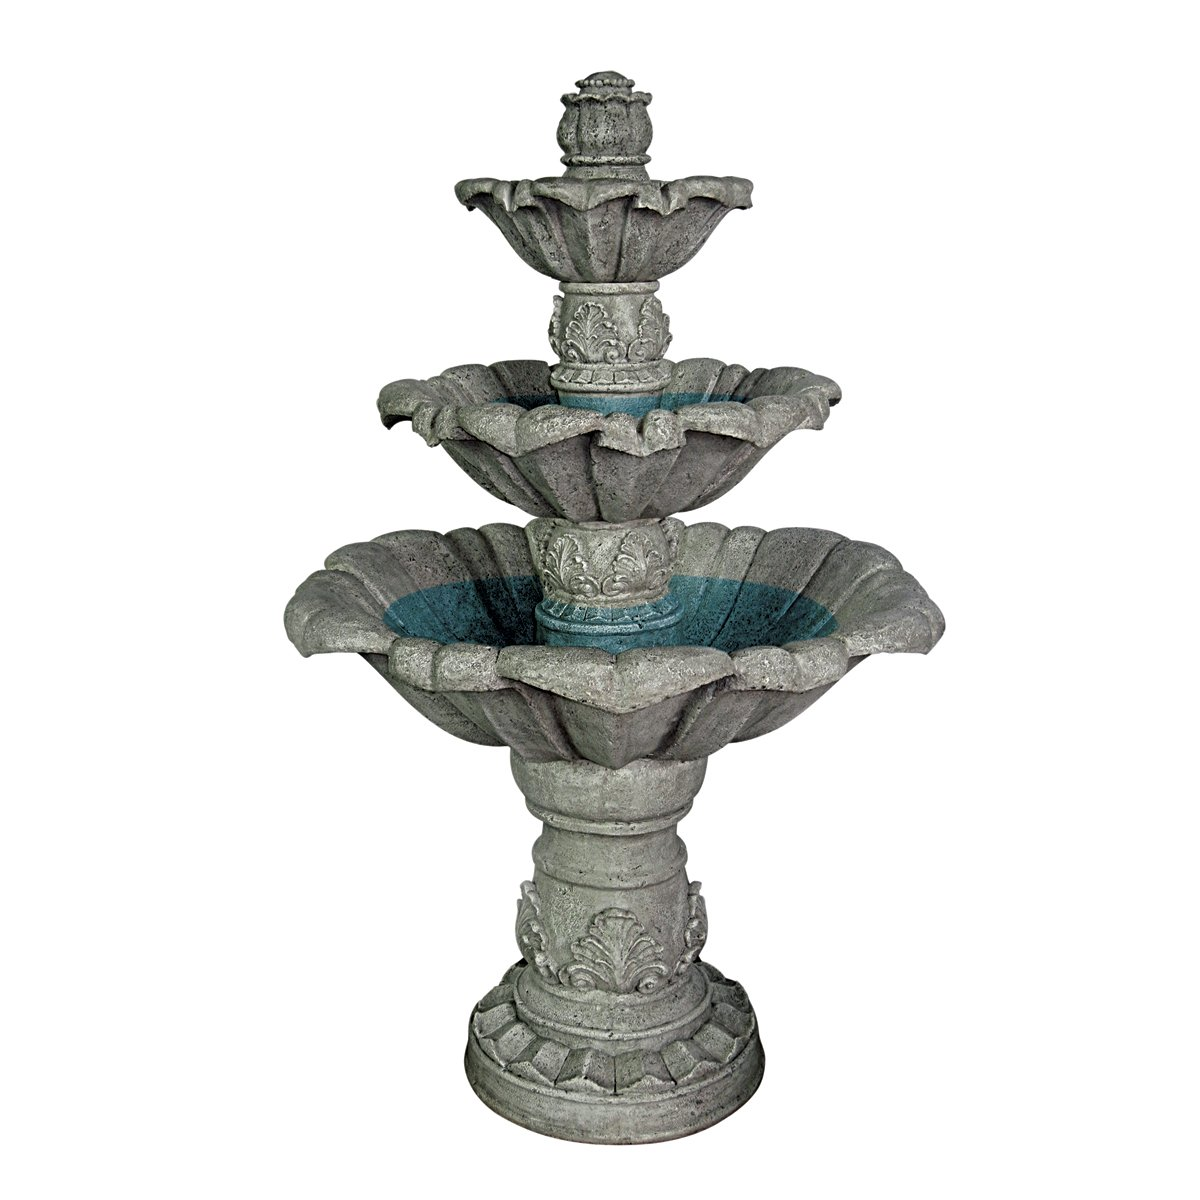 Water Fountain - 4 Foot Tall Sorrento Three Tier Garden Decor Fountain - Outdoor Water Feature